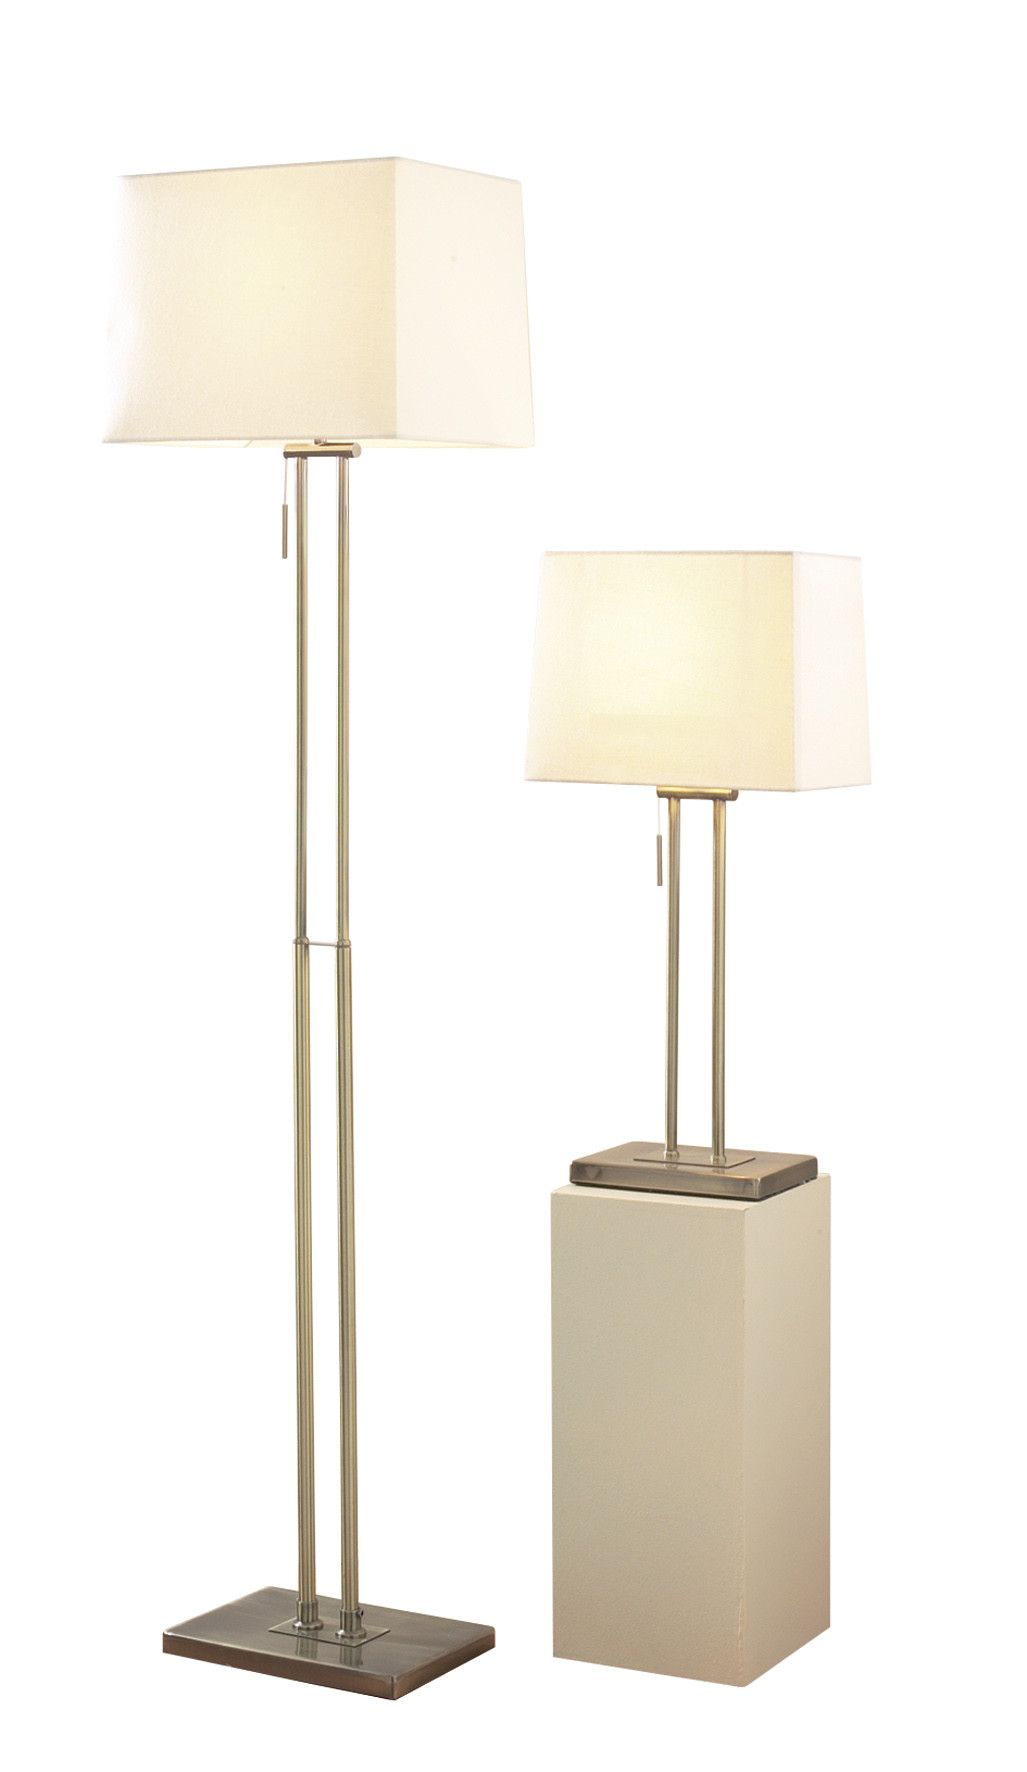 Dar lighting picasso floor and table lamp set wayfair uk http dar lighting picasso floor and table lamp set wayfair uk httpwww geotapseo Images